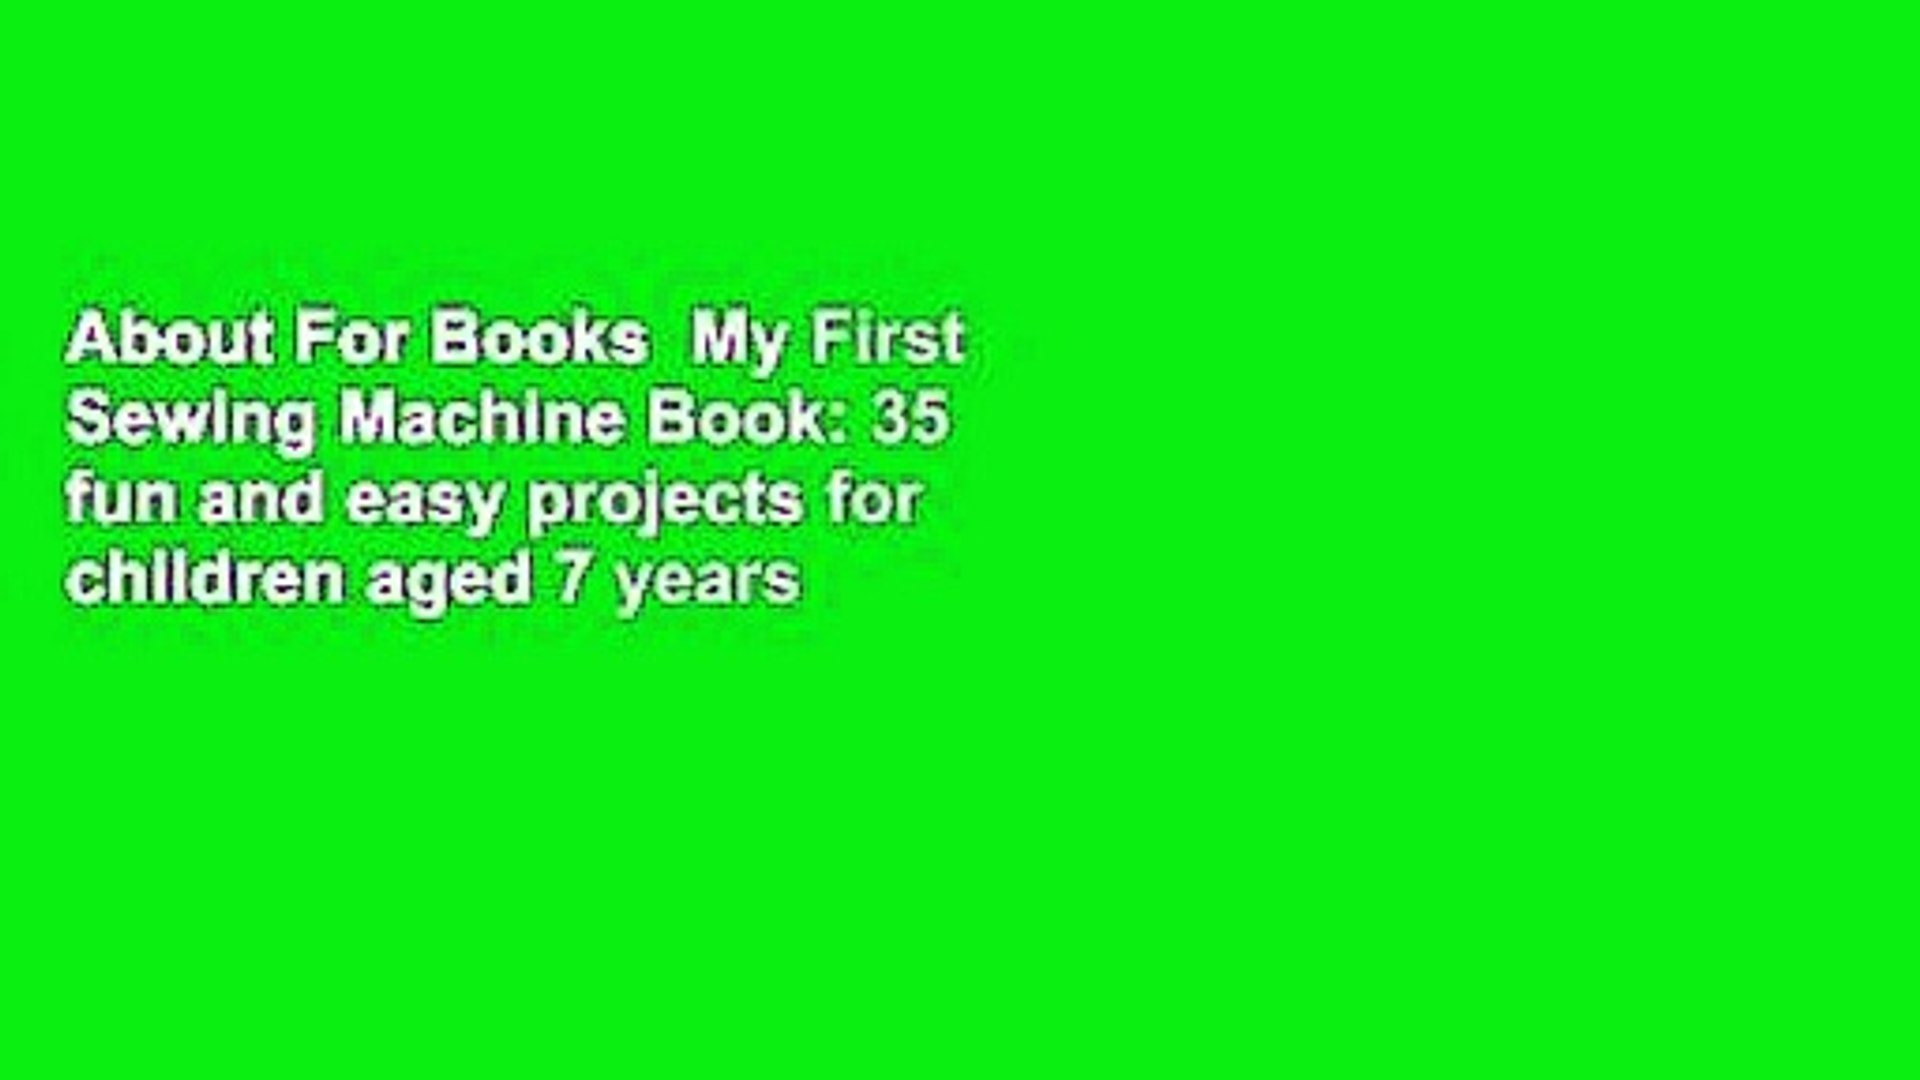 My First Sewing Book 35 easy and fun projects for children aged 7 years